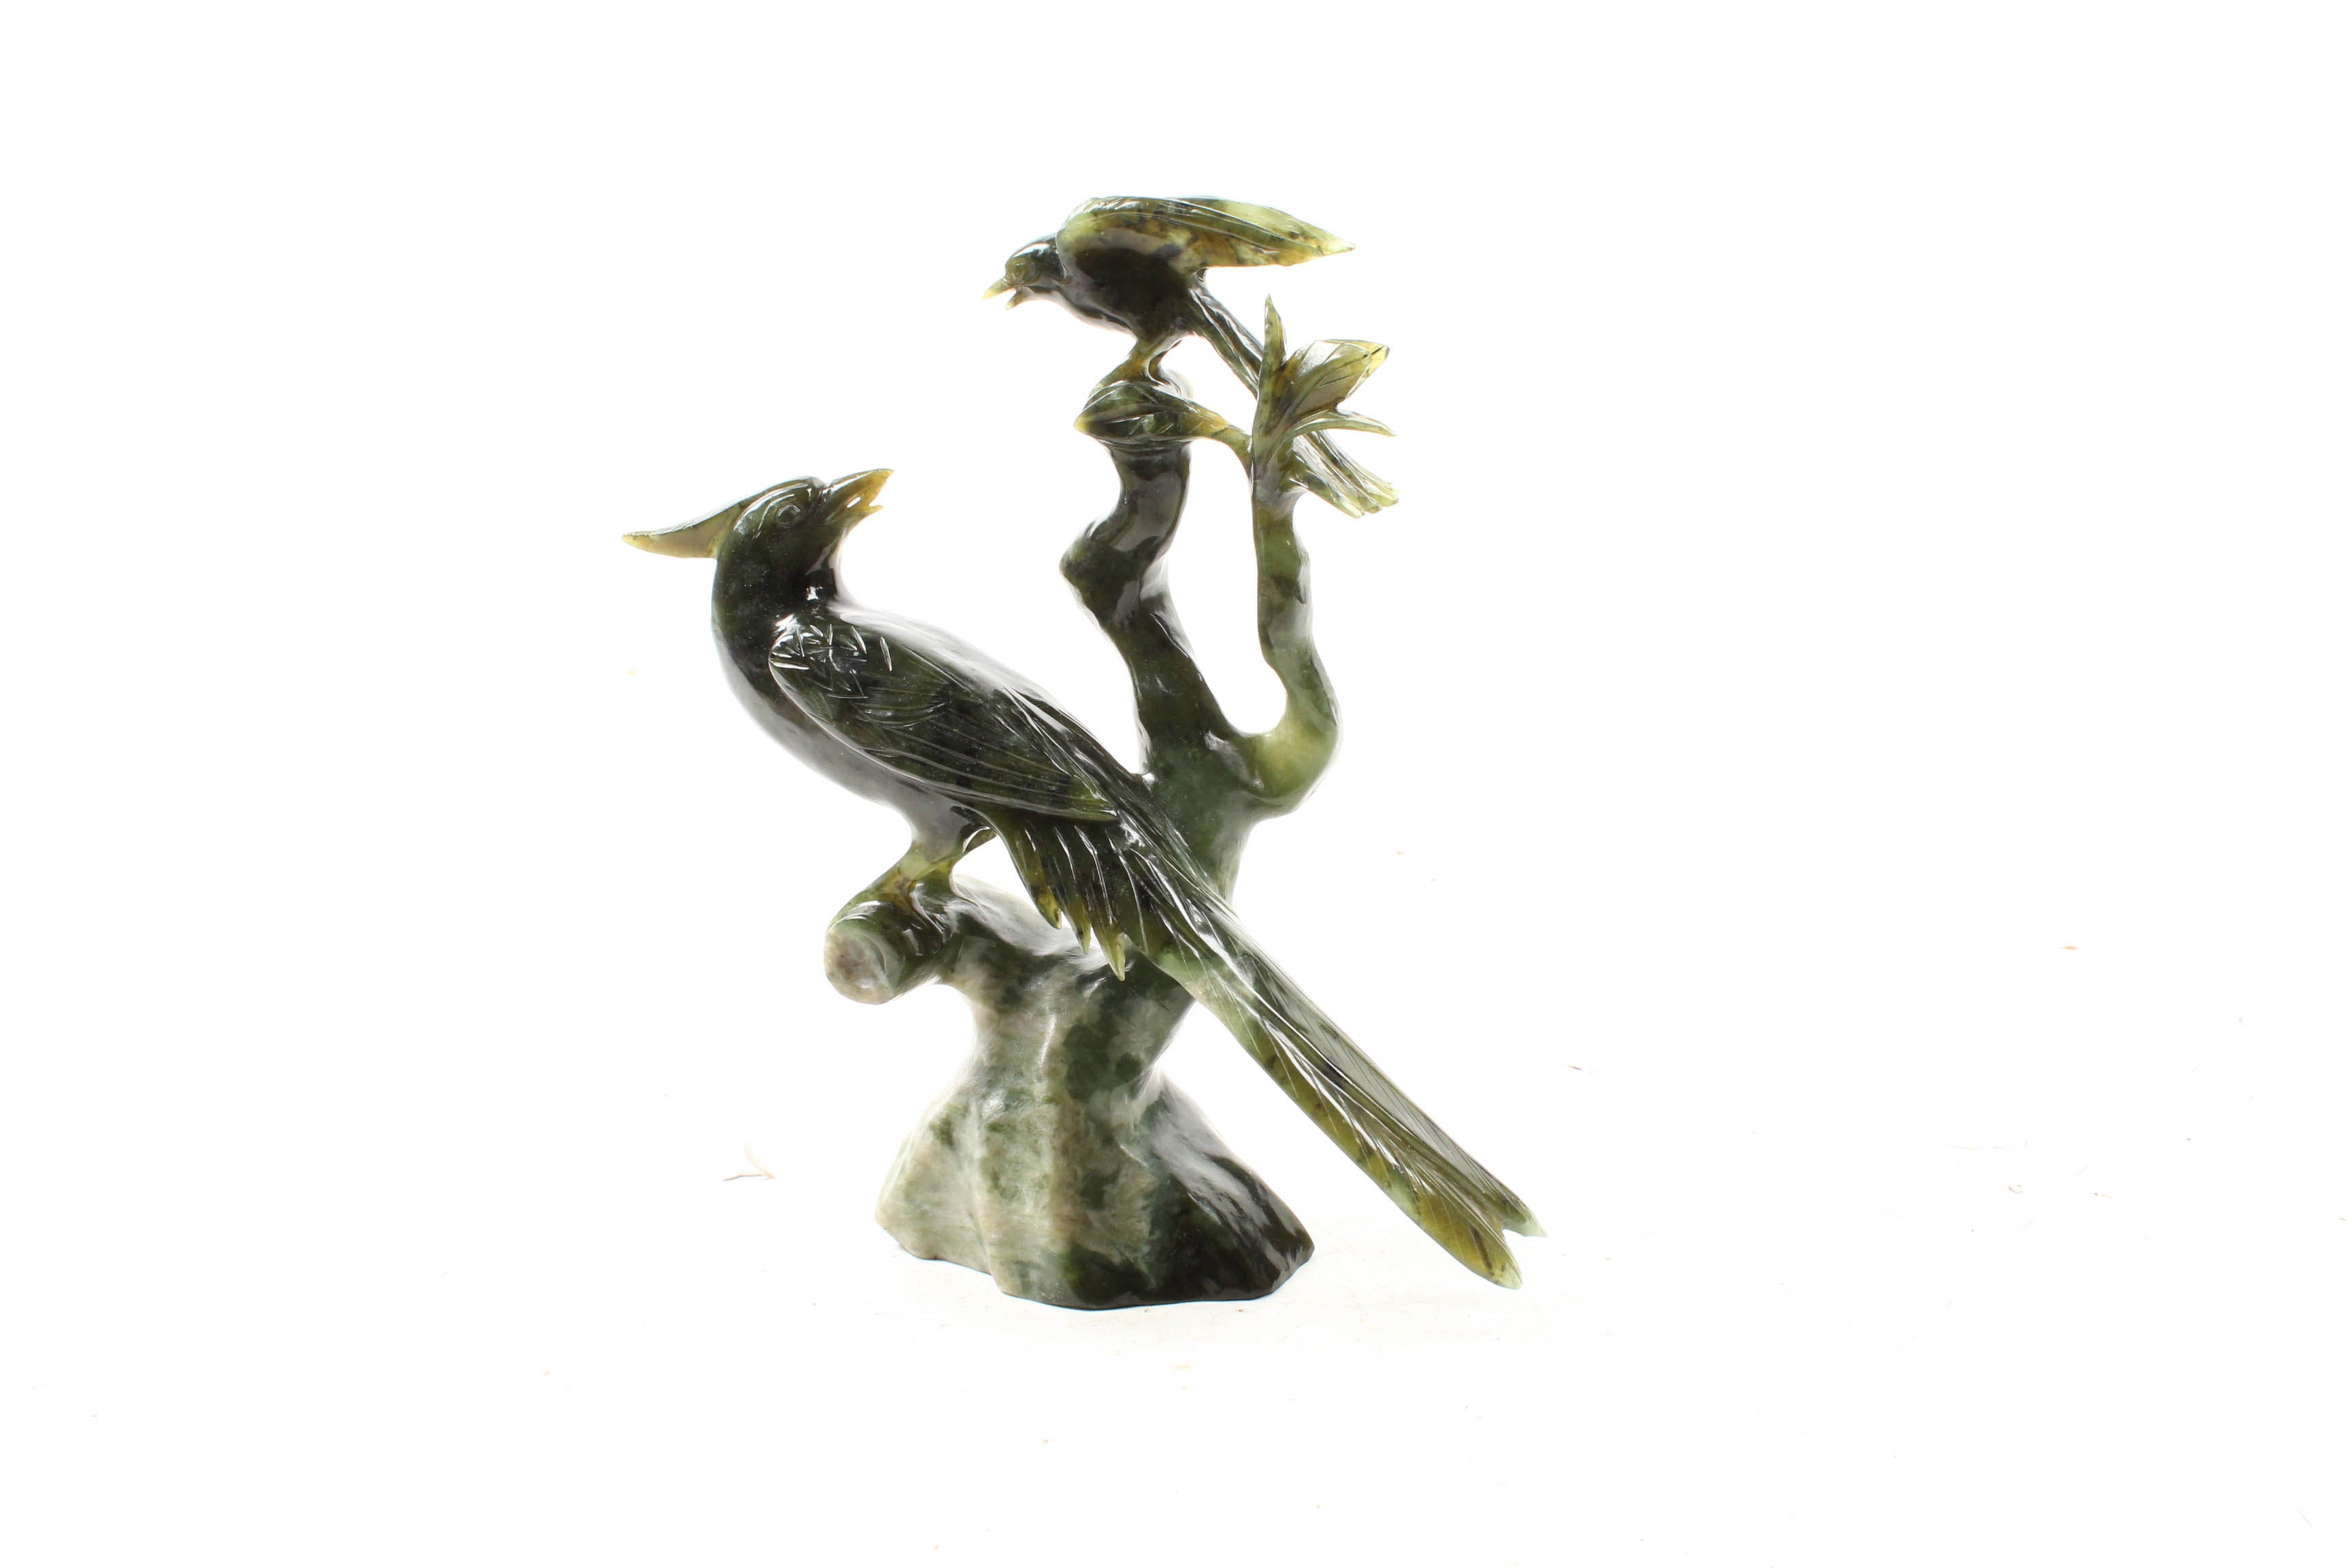 East Asian Carved Nephrite Avian Sculpture